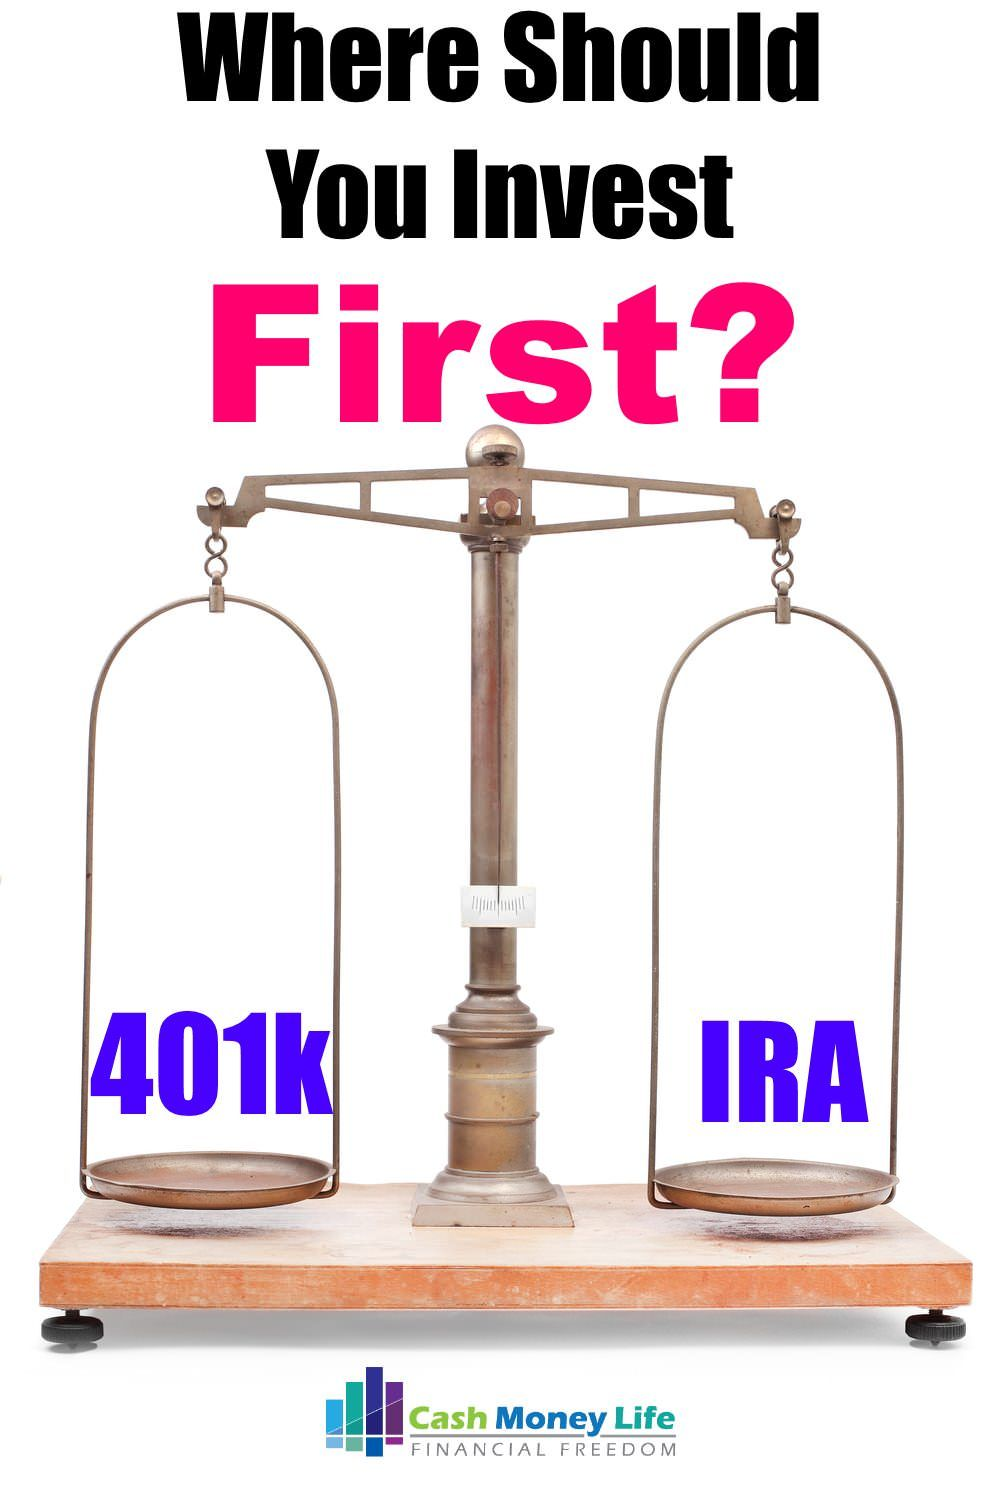 Where Should You Invest First 401(k) vs IRA? (With